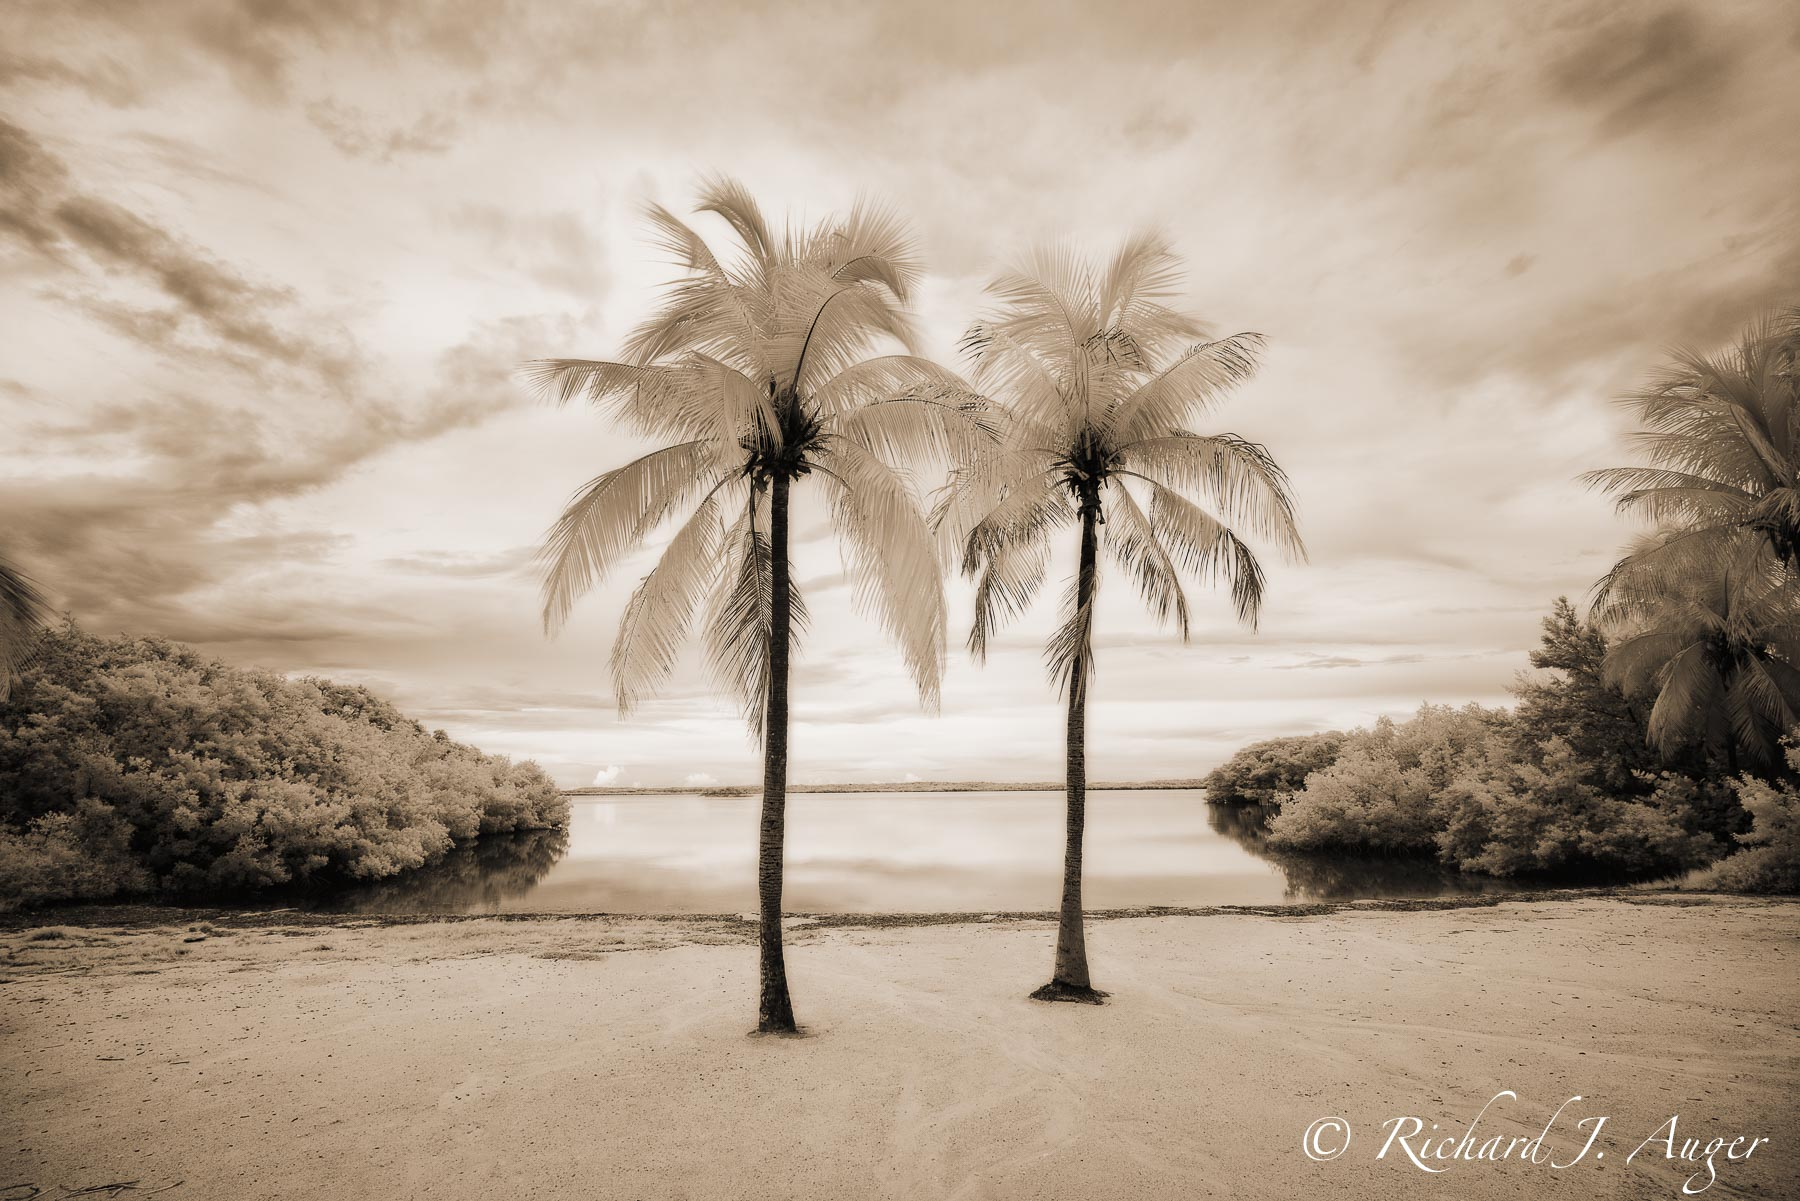 Florida Keys, Palm Trees, Water, Mangroves, Calm, Peaceful, infrared, landscape, photographer, art